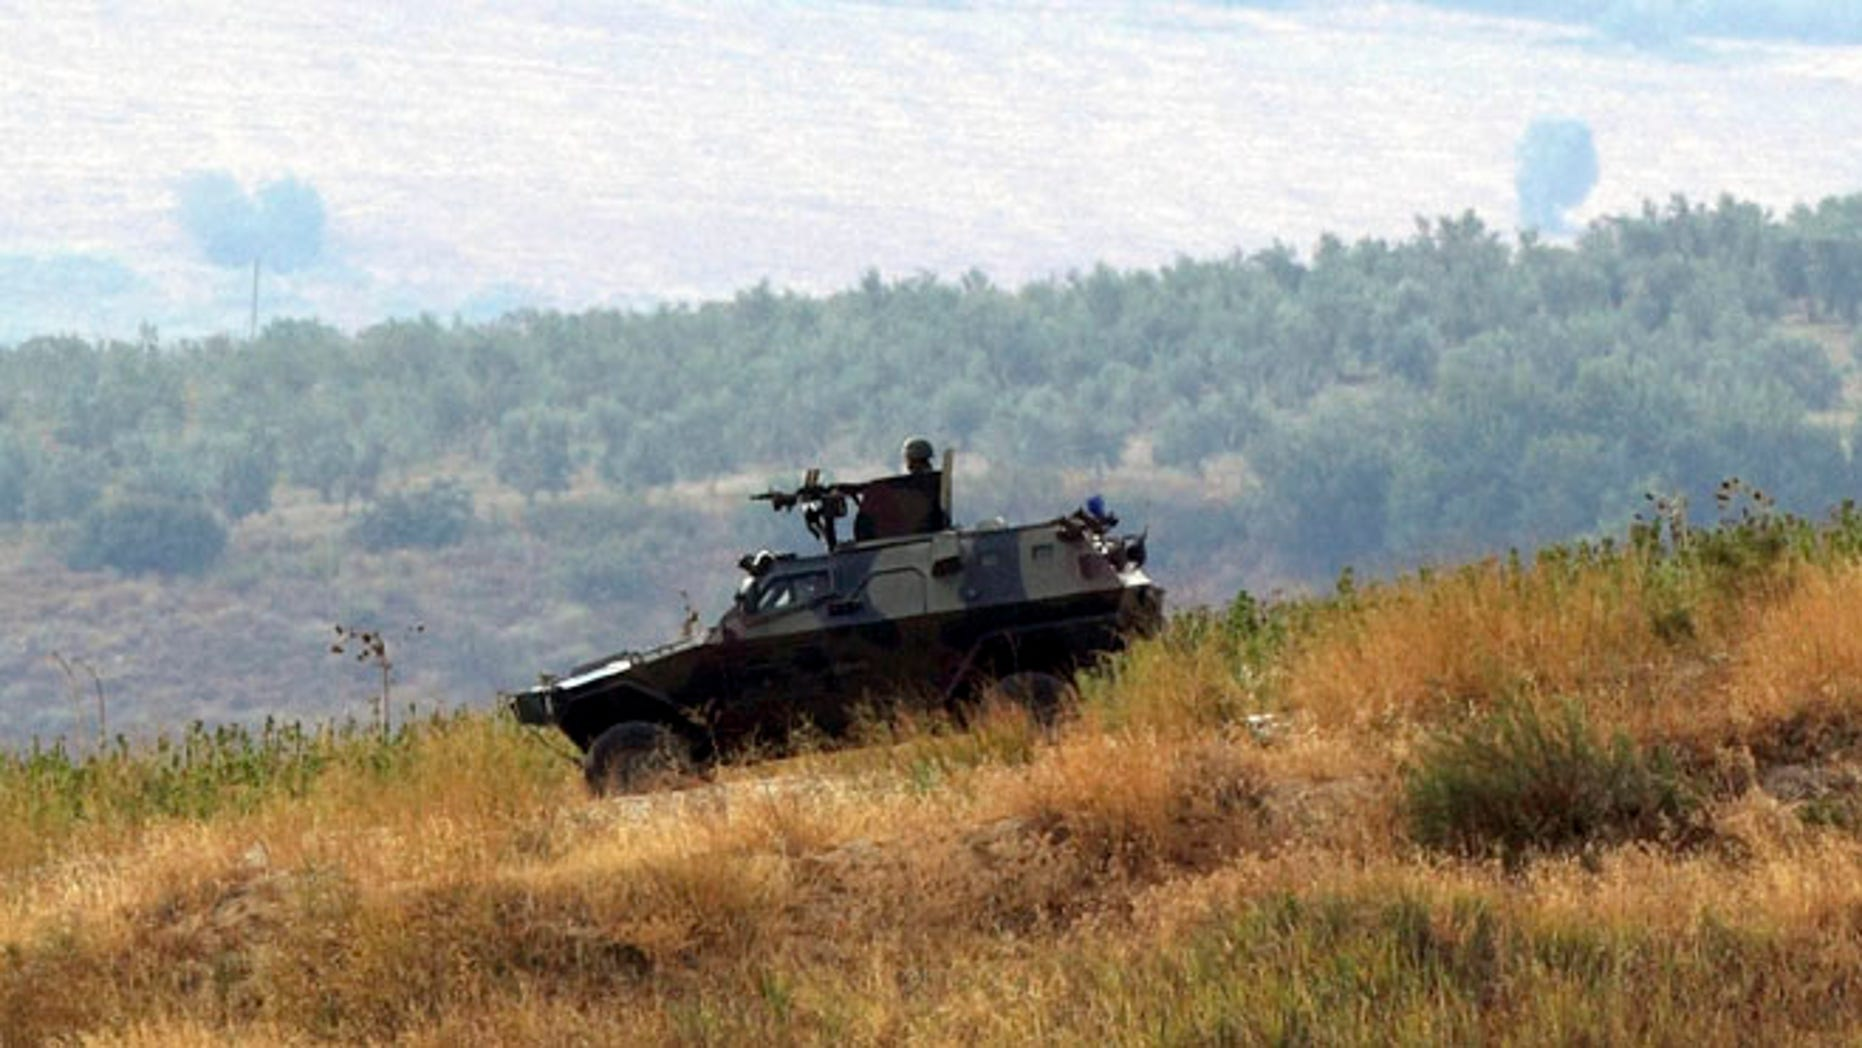 Oct. 9, 2012: Turkish soldiers in a military vehicle patrol on the Turkish-Syrian border near the village of Hacipasa in Hatay province, southern Turkey.